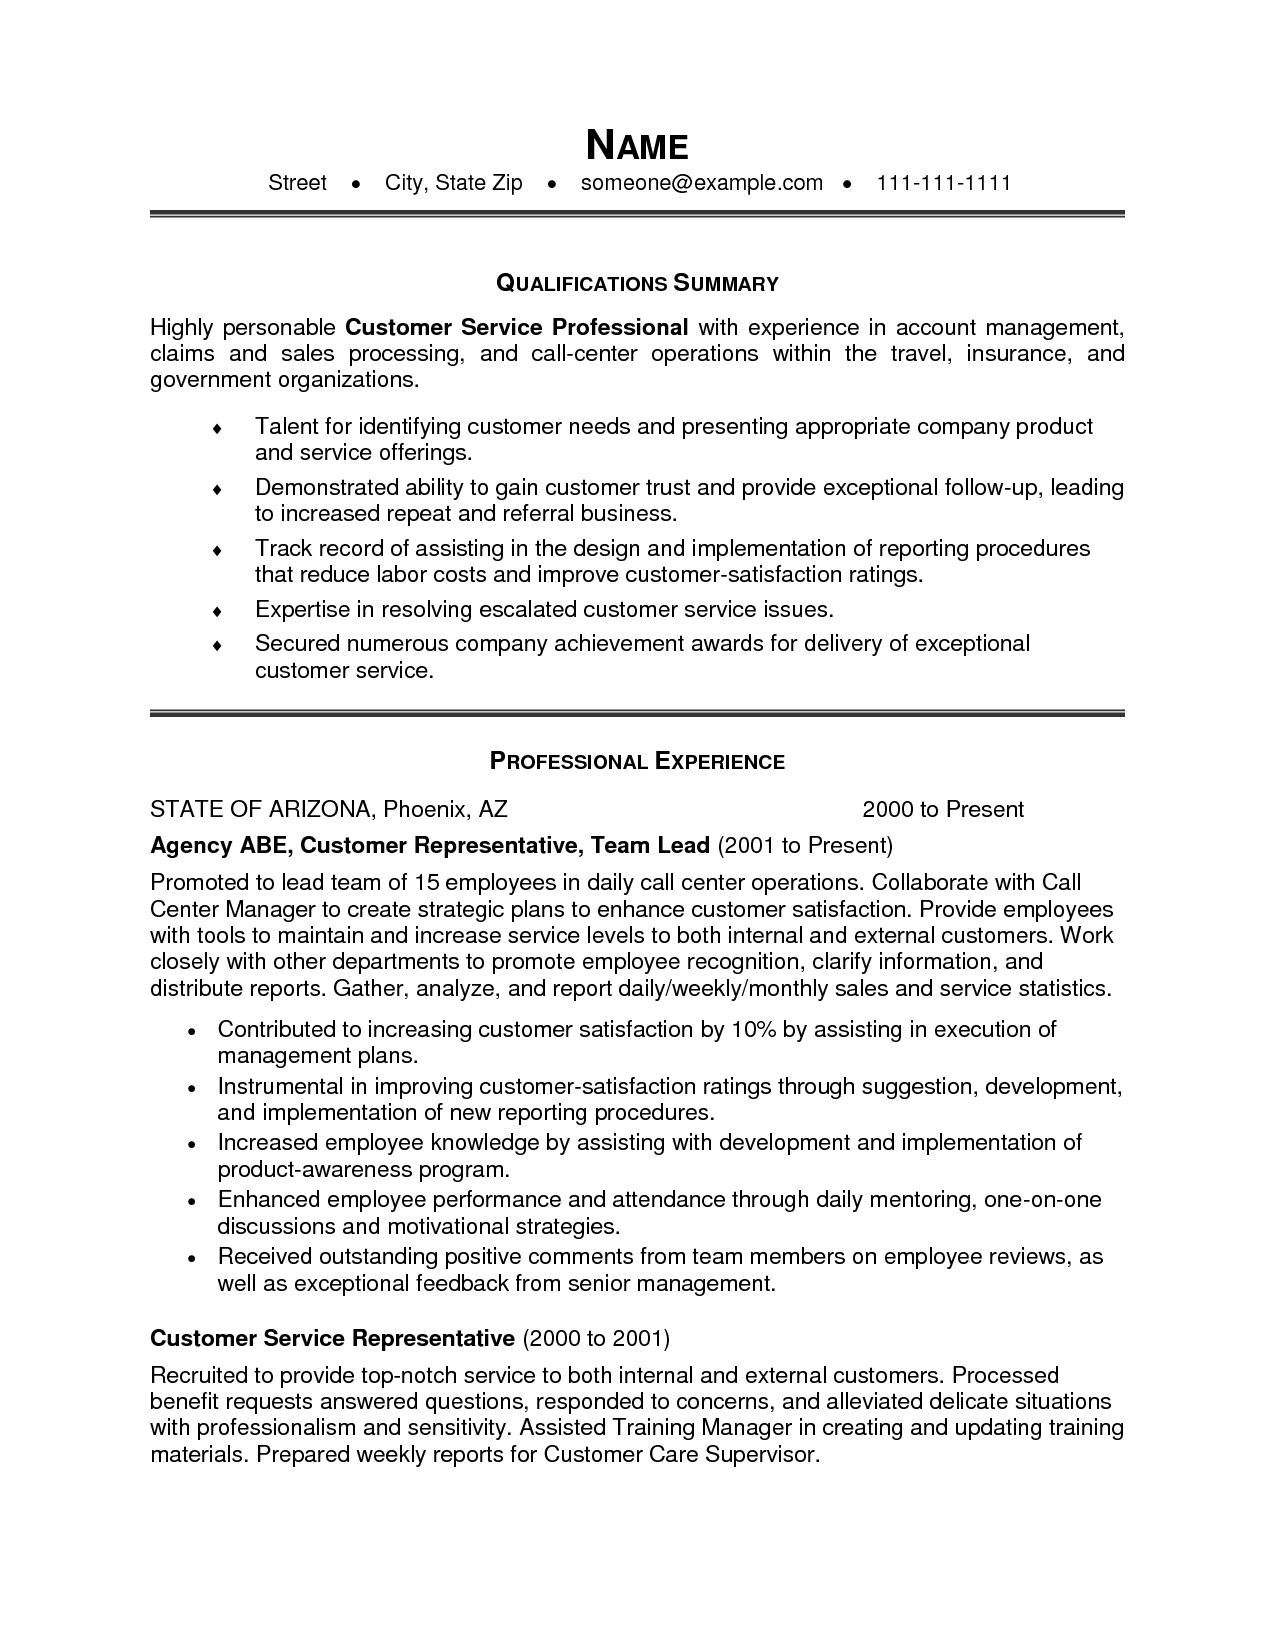 Resume Samples For Customer Service Manager Customer Service Resume Summary Examples Resume Summary Examples